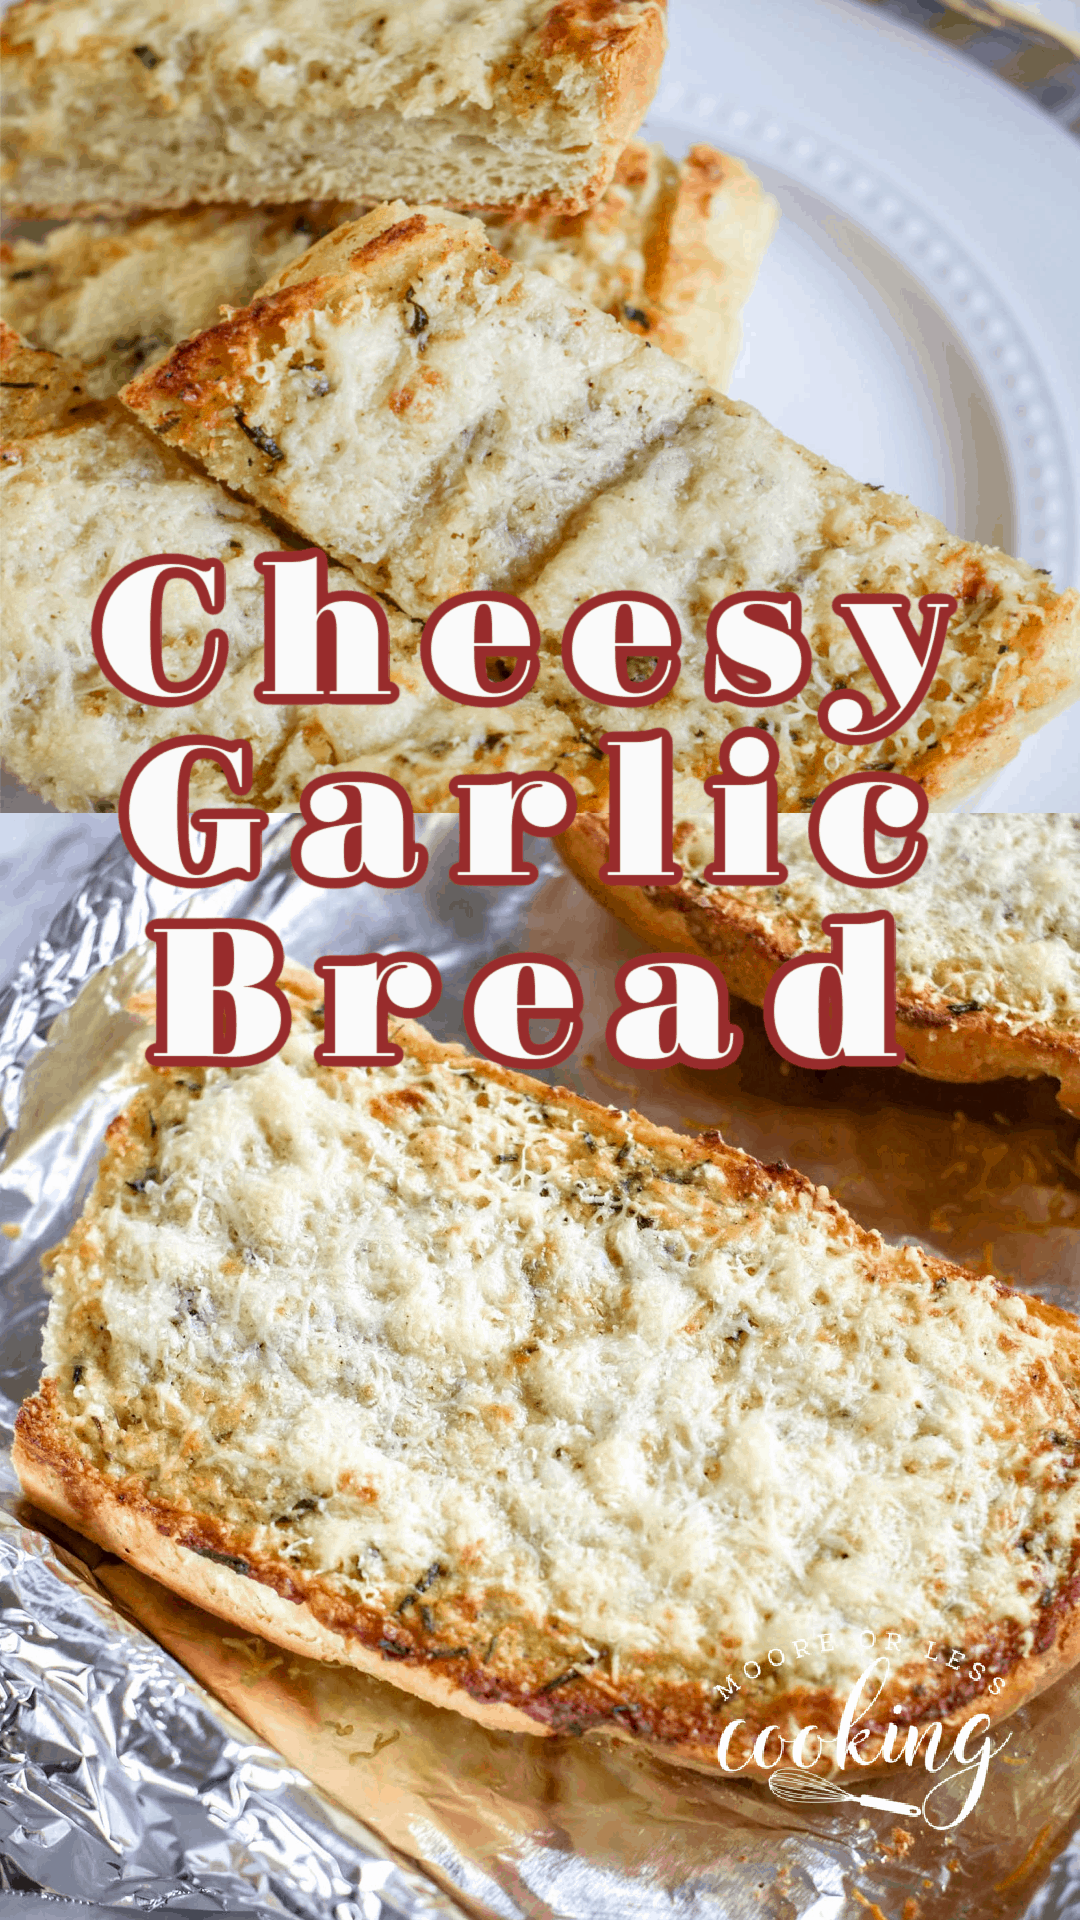 Slathered with a homemade herbed garlic butter spread and garnished with two kinds of cheese, French bread gets toasted to savory perfection with this irresistible cheesy garlic bread recipe. via @Mooreorlesscook